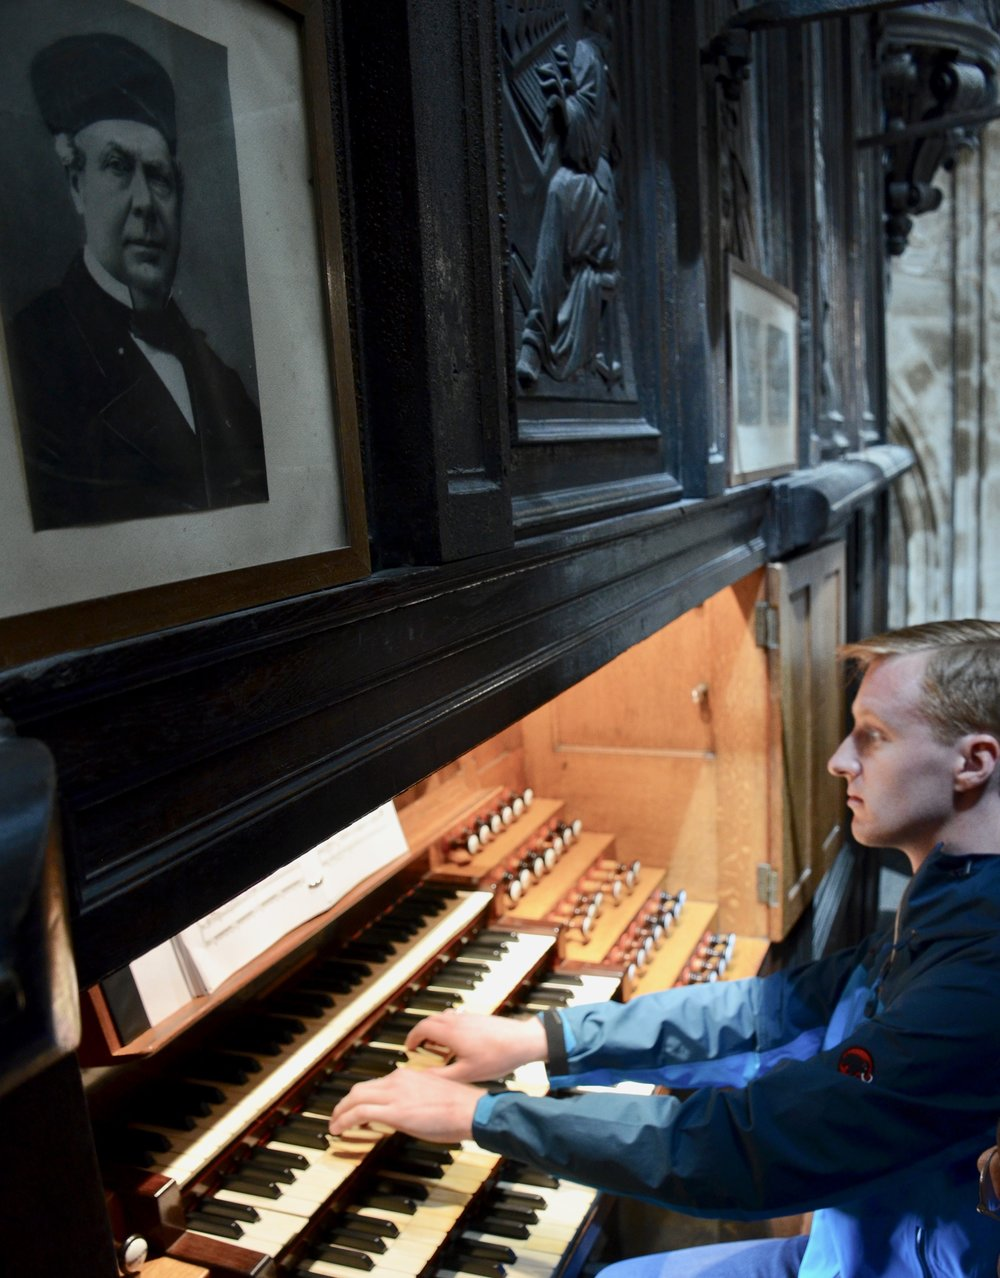 Jon Ortloff, organ builder, performing Widor. under a photo of Aristide Cavaillé-Coll in Rouen